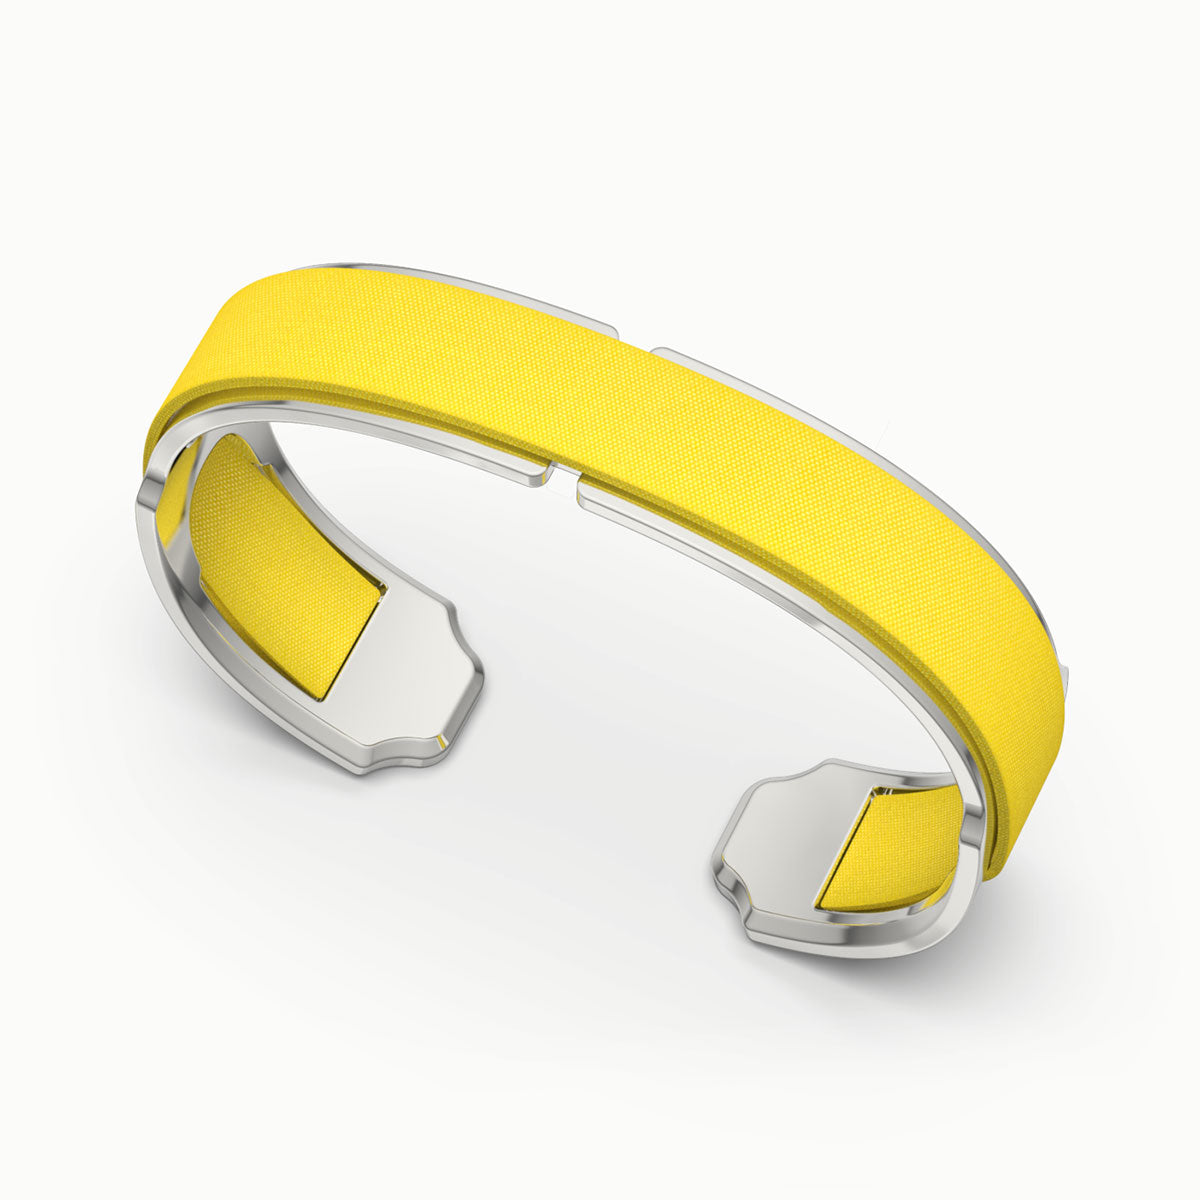 Bare Silk Cuff - Pineapple Yellow